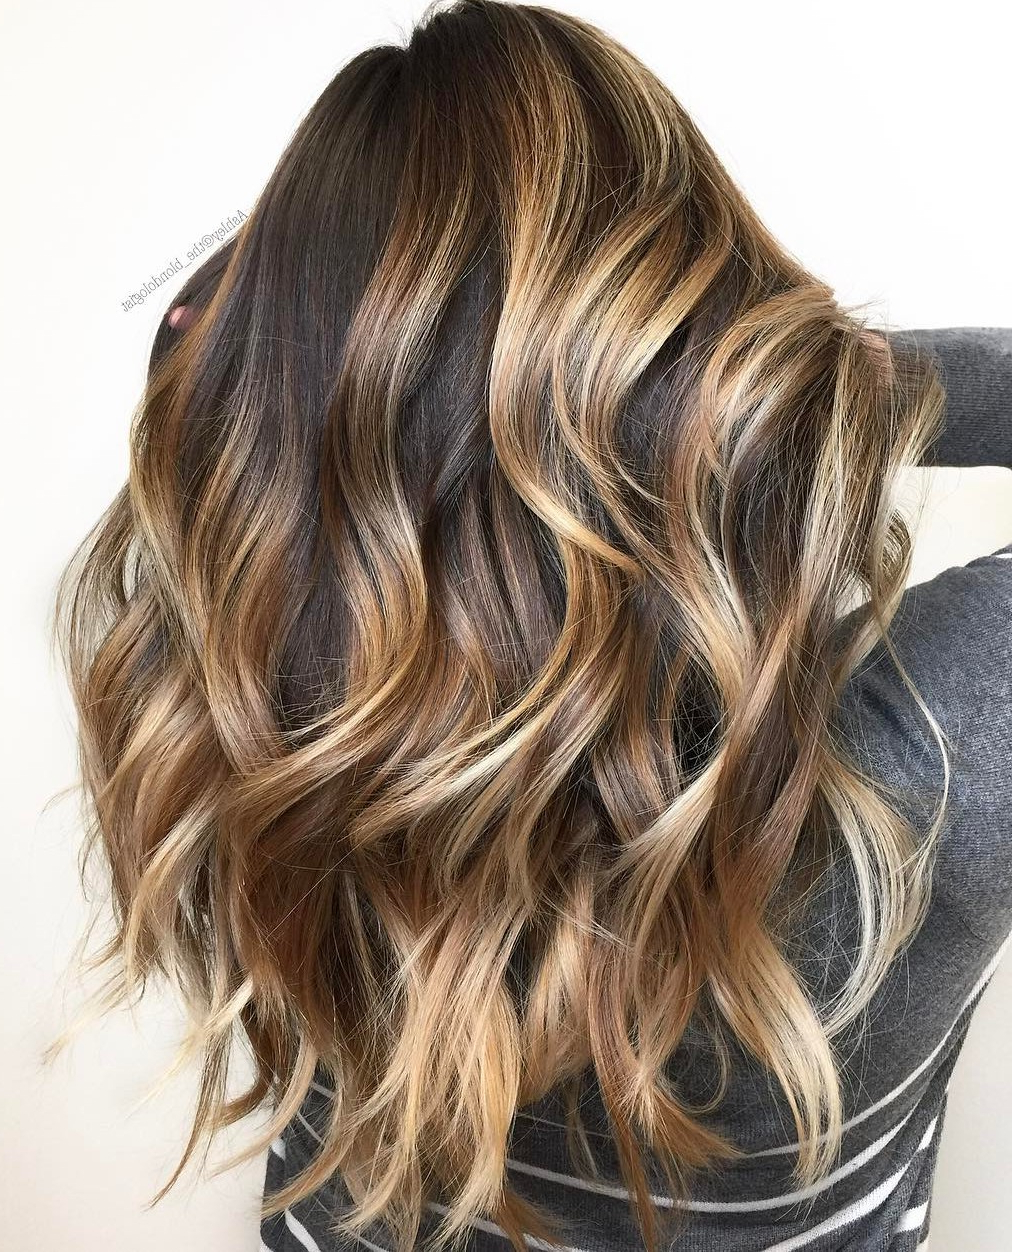 Popular Long Voluminous Ombre Hairstyles With Layers Regarding 20 Head Turning Haircuts And Hairstyles For Long Thick Hair (View 17 of 20)